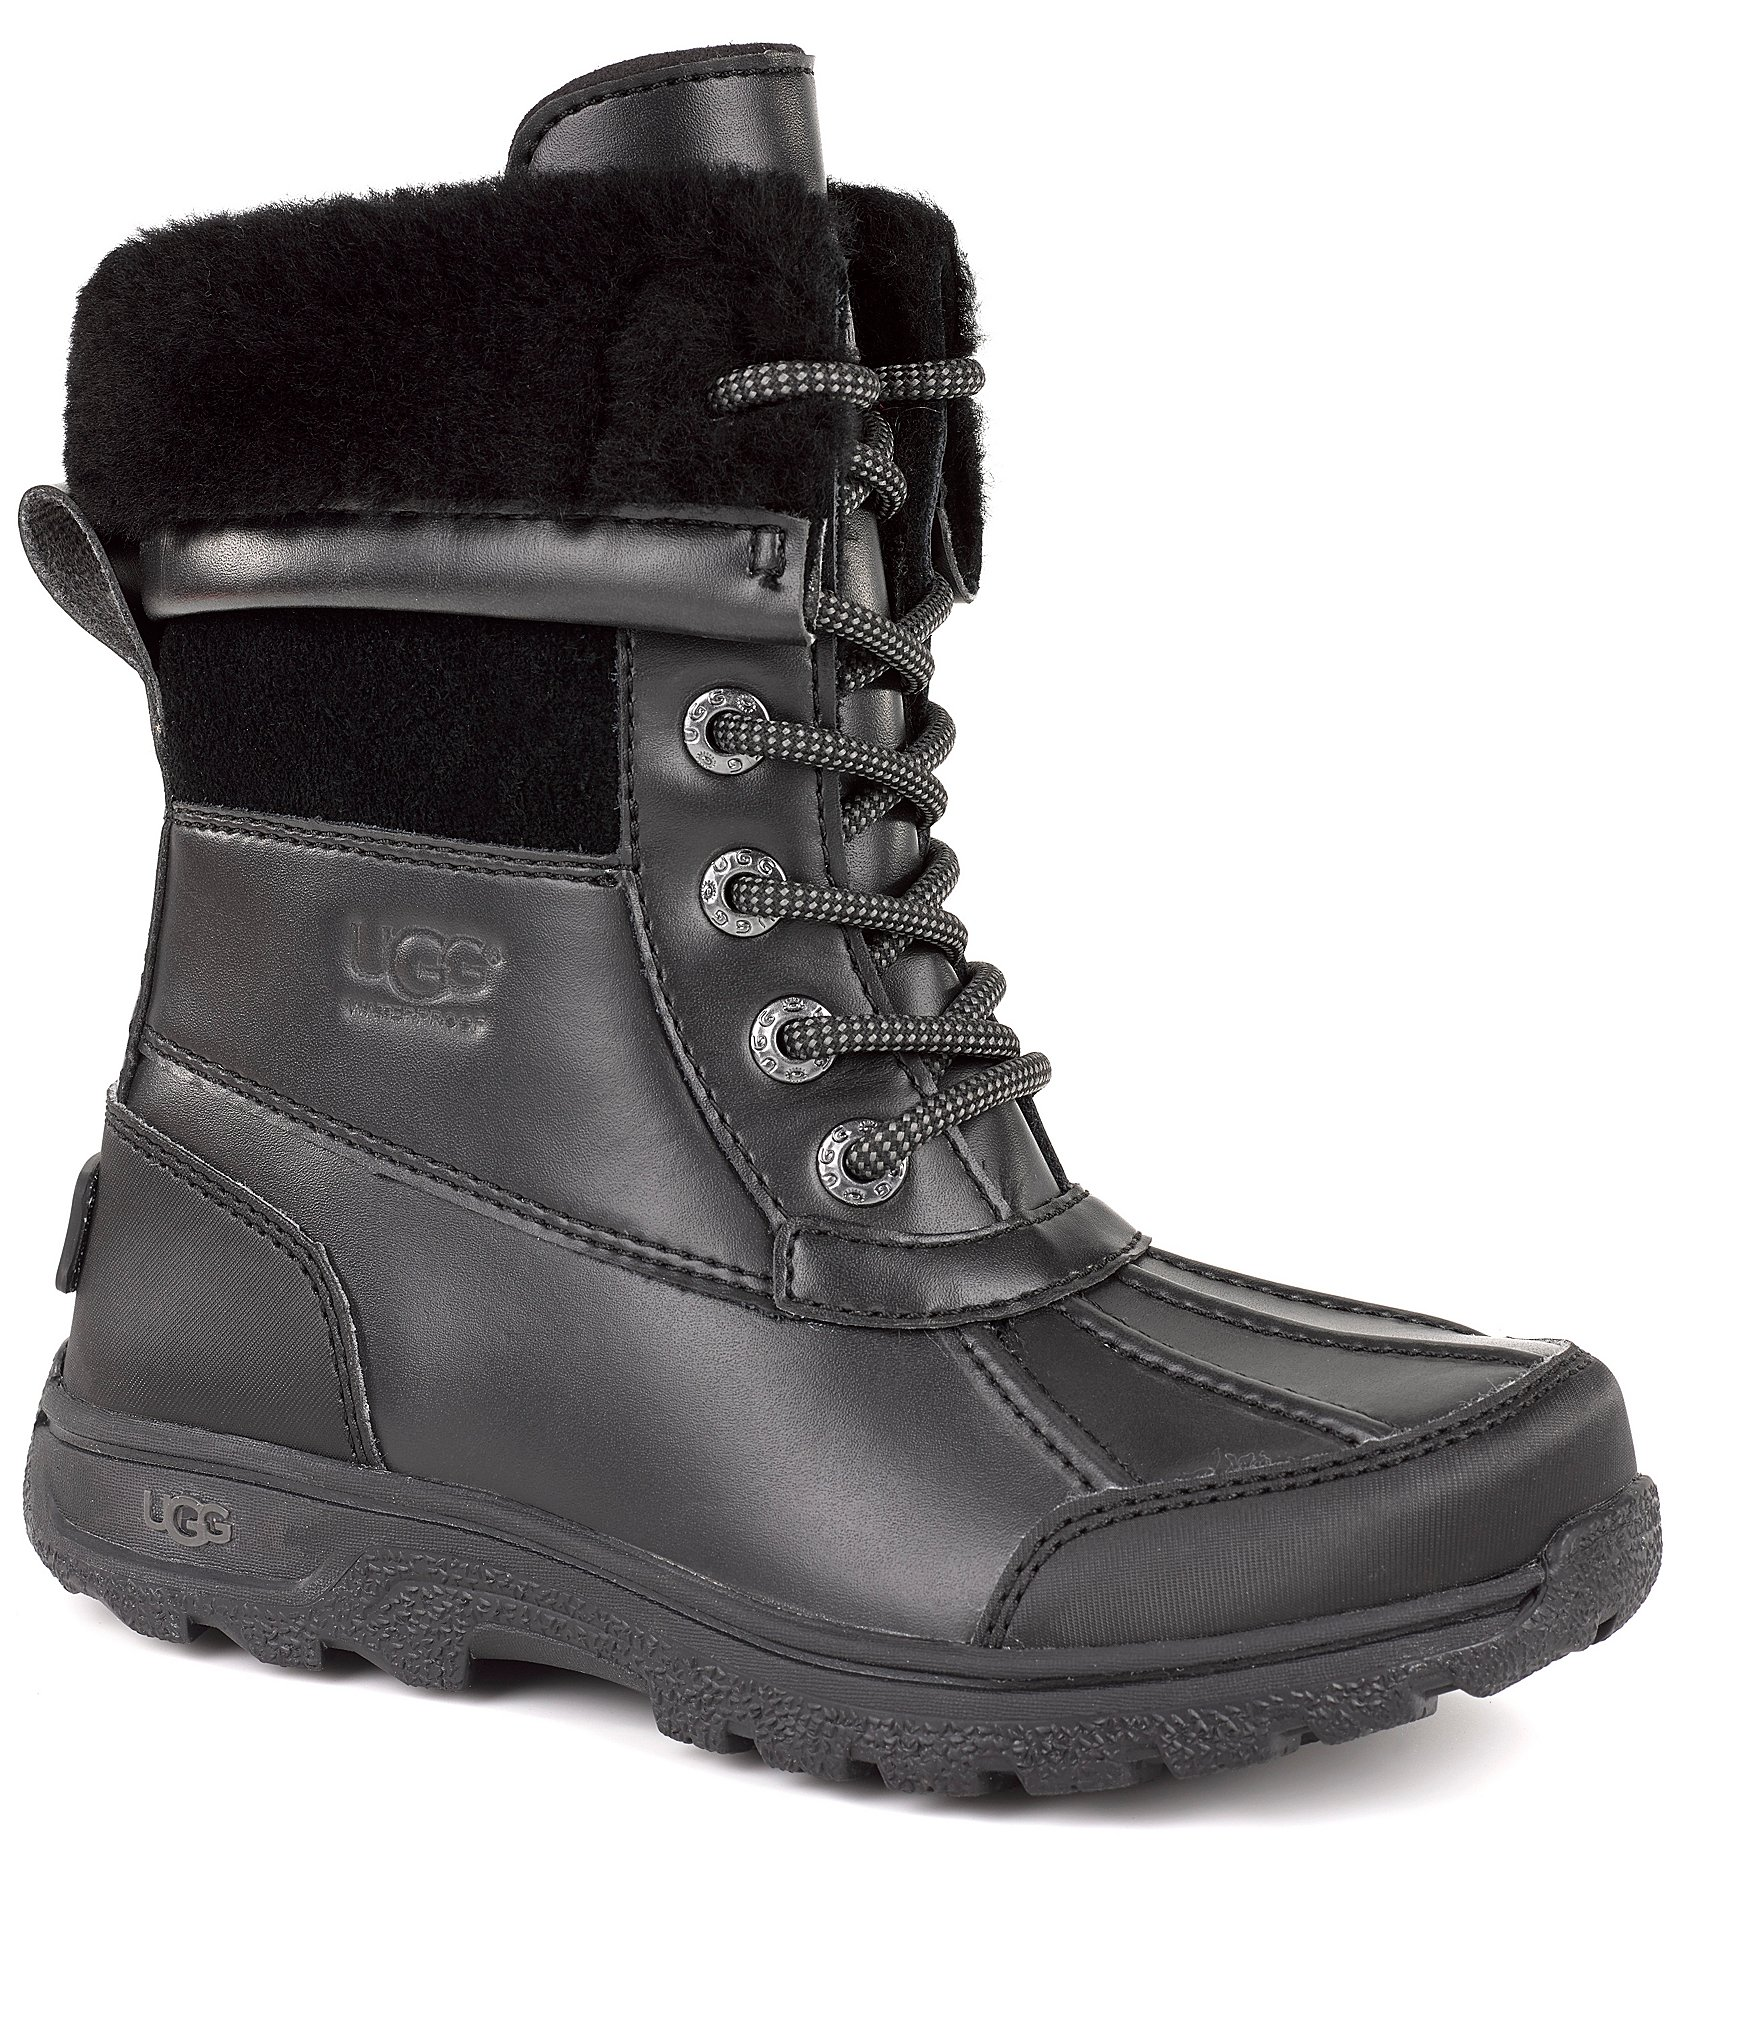 Since , The Original Muck Boot Company has specialized in waterproof performance boots. Find high quality, comfortable boots for all weather here. Shop now for free shipping!